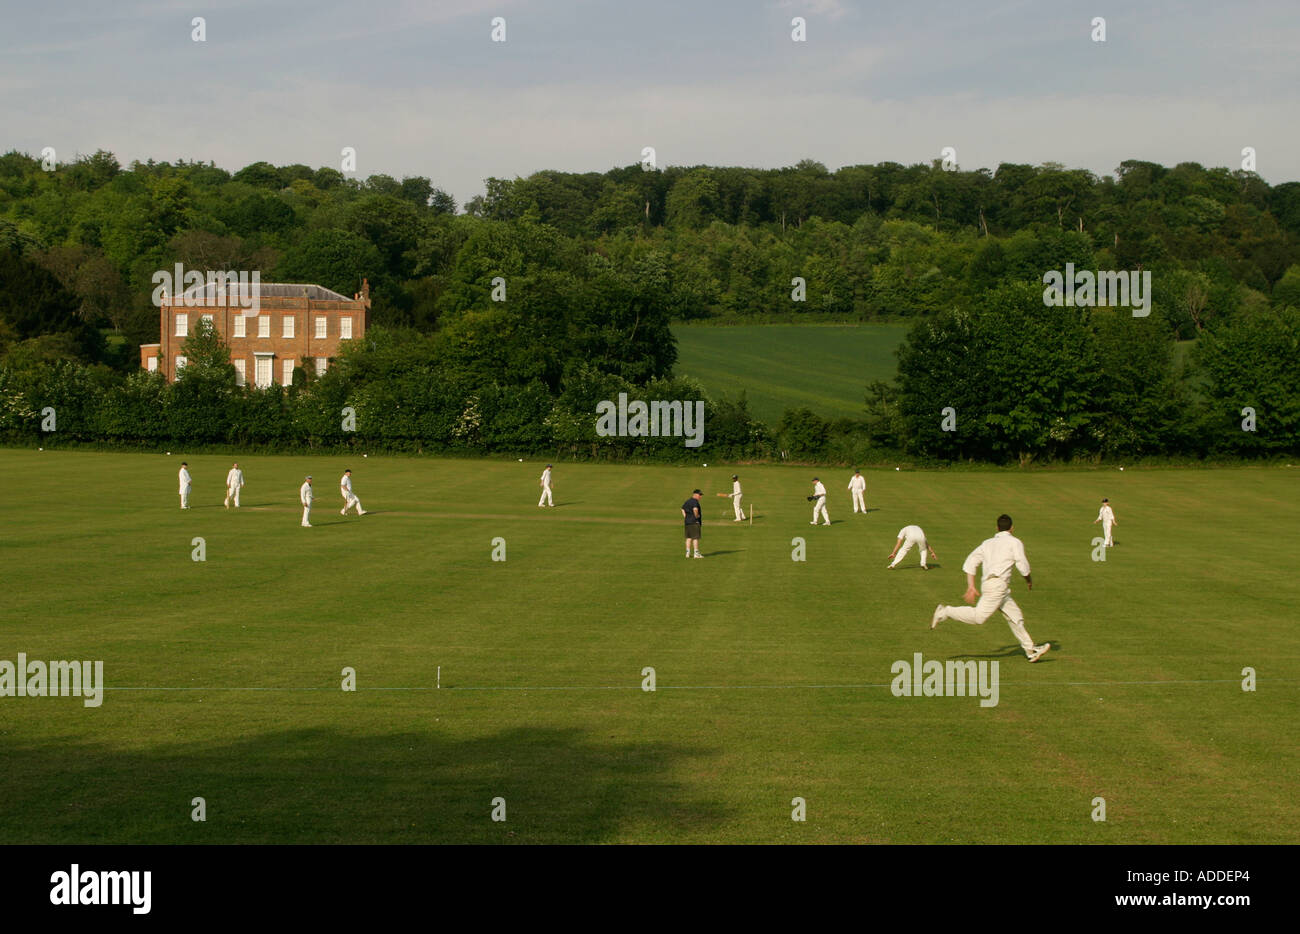 Fielder runs to stop the ball during a cricket match on Hambleden village playing fields, Hambleden. - Stock Image